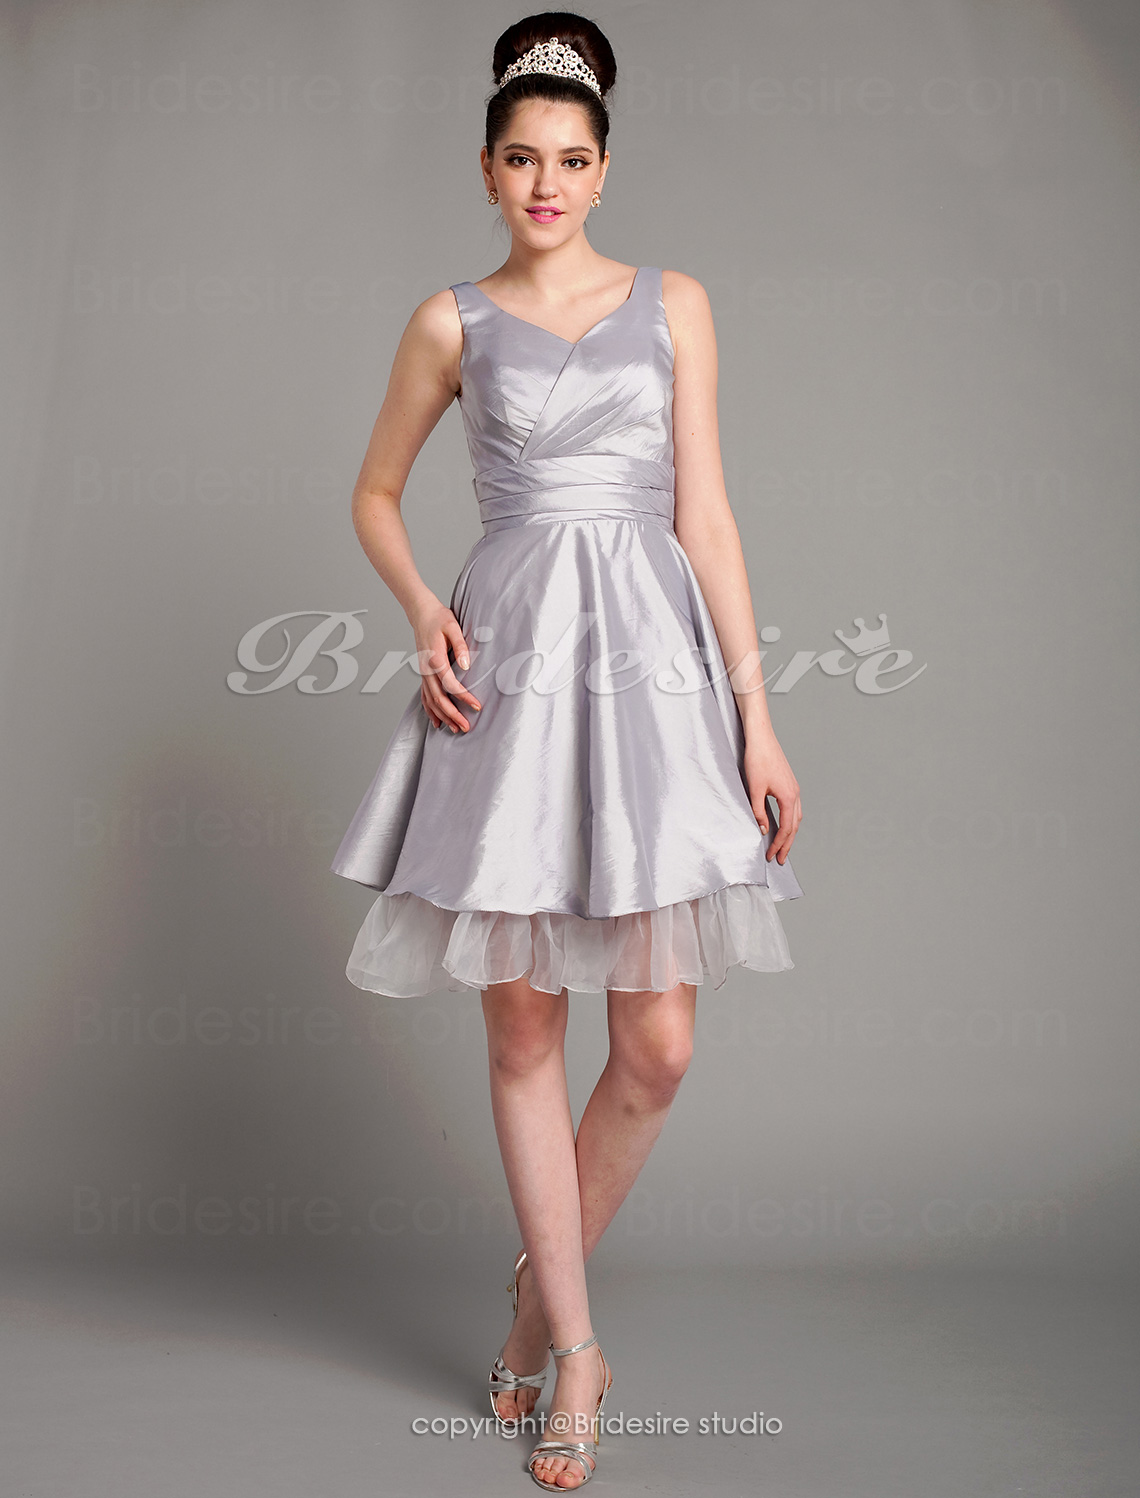 A-line Organza Over Taffeta Knee-length Straps Bridesmaid Dress